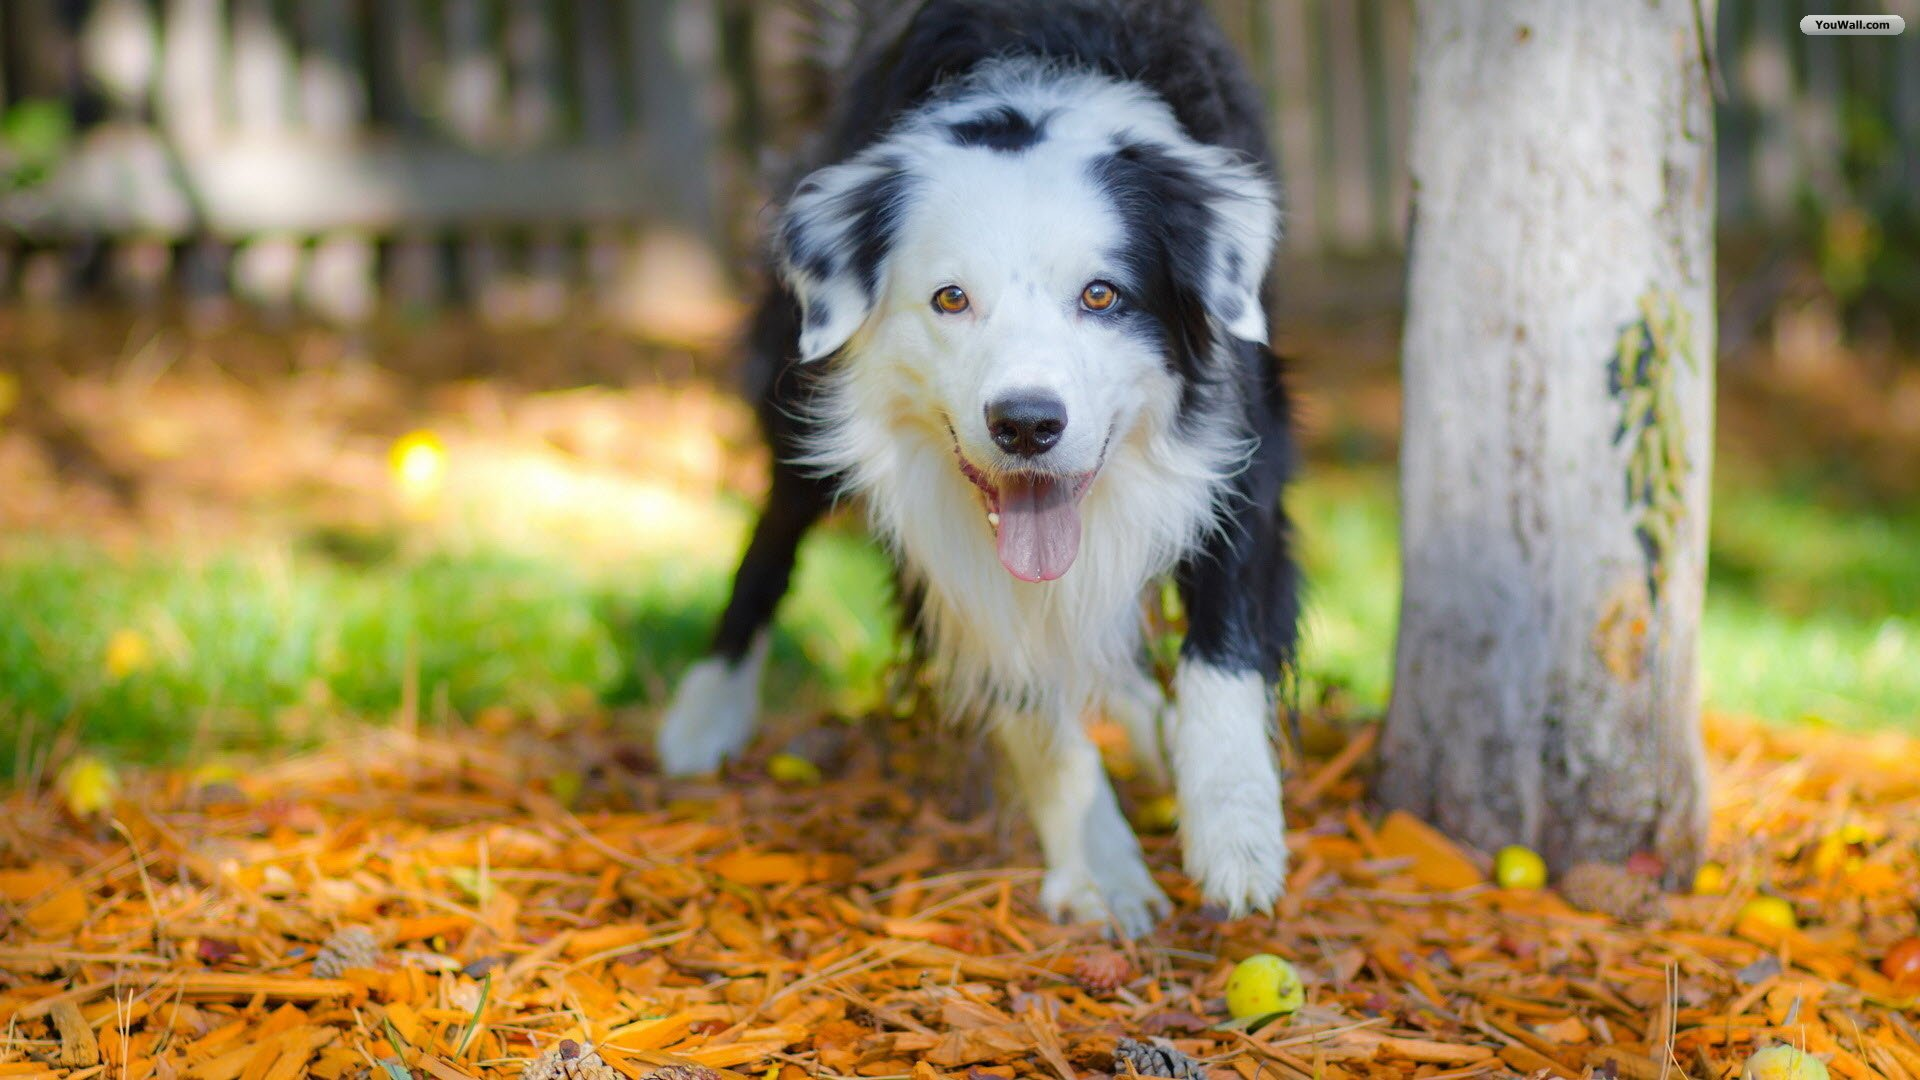 Cute-dog-for-free-download-about-wallpaper-wpc9003922